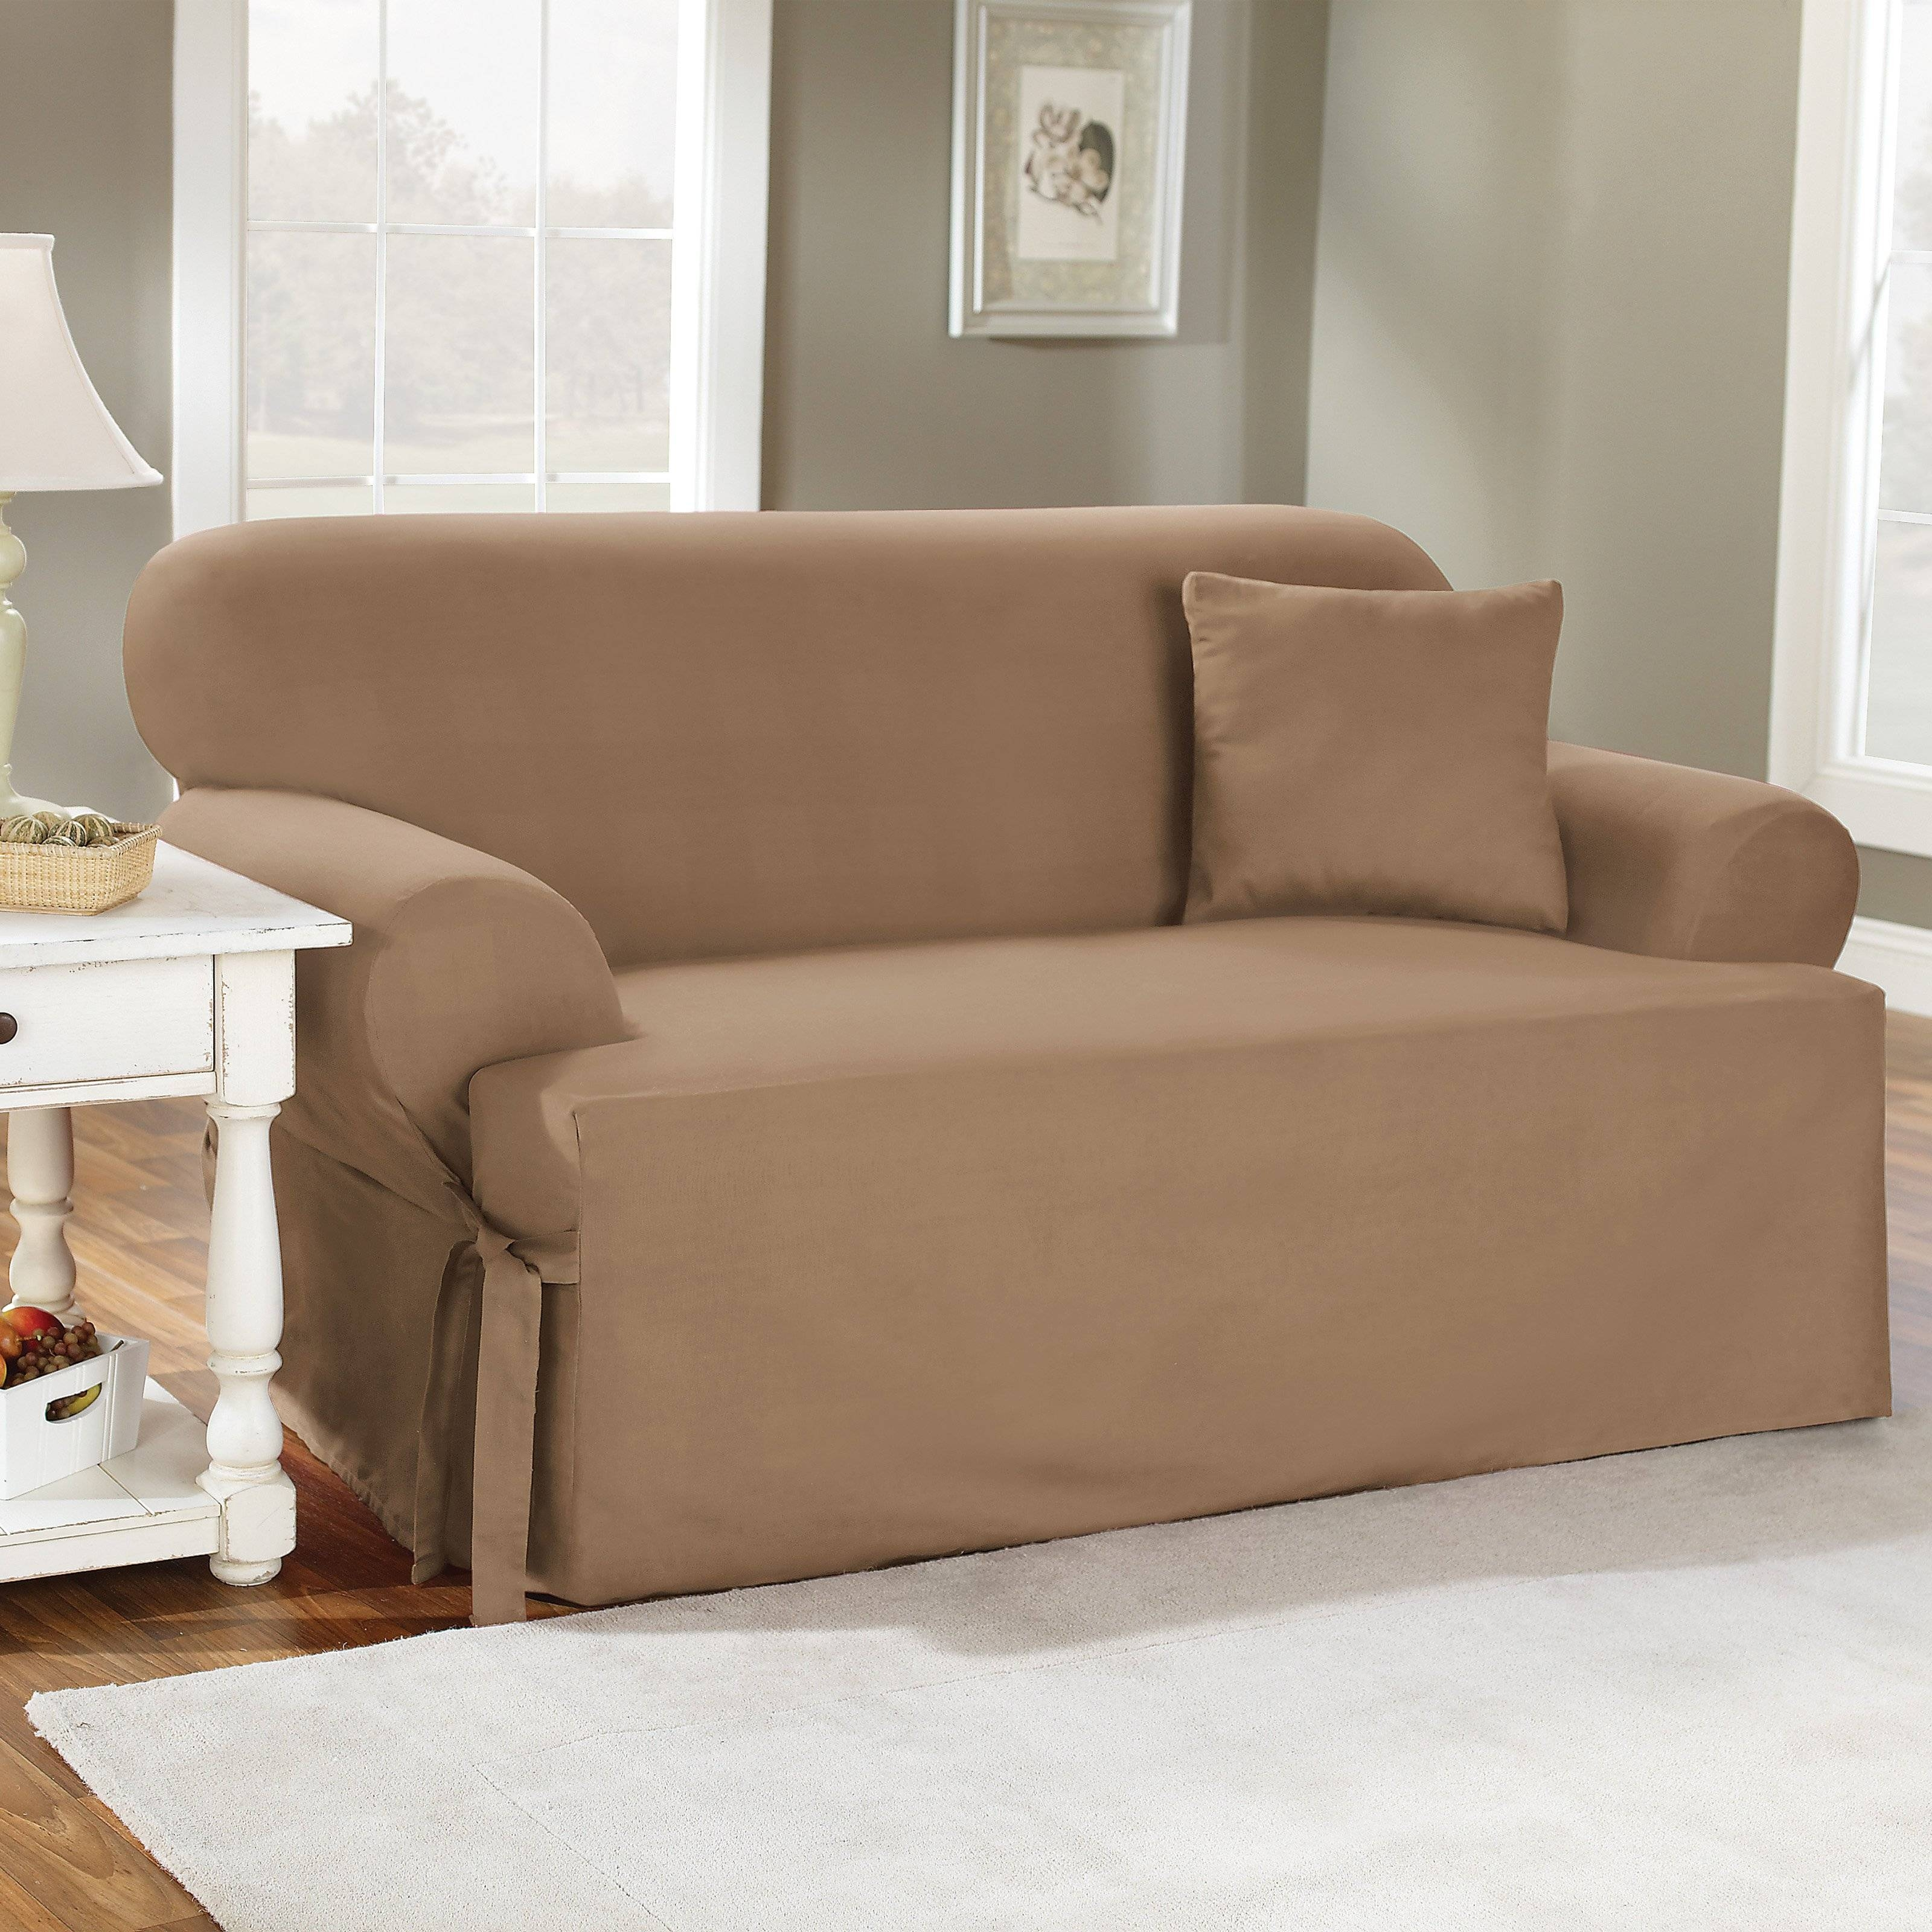 Sure Fit Cotton Duck T-Cushion Sofa Slipcover - Walmart pertaining to Loveseat Slipcovers T-Cushion (Image 11 of 15)